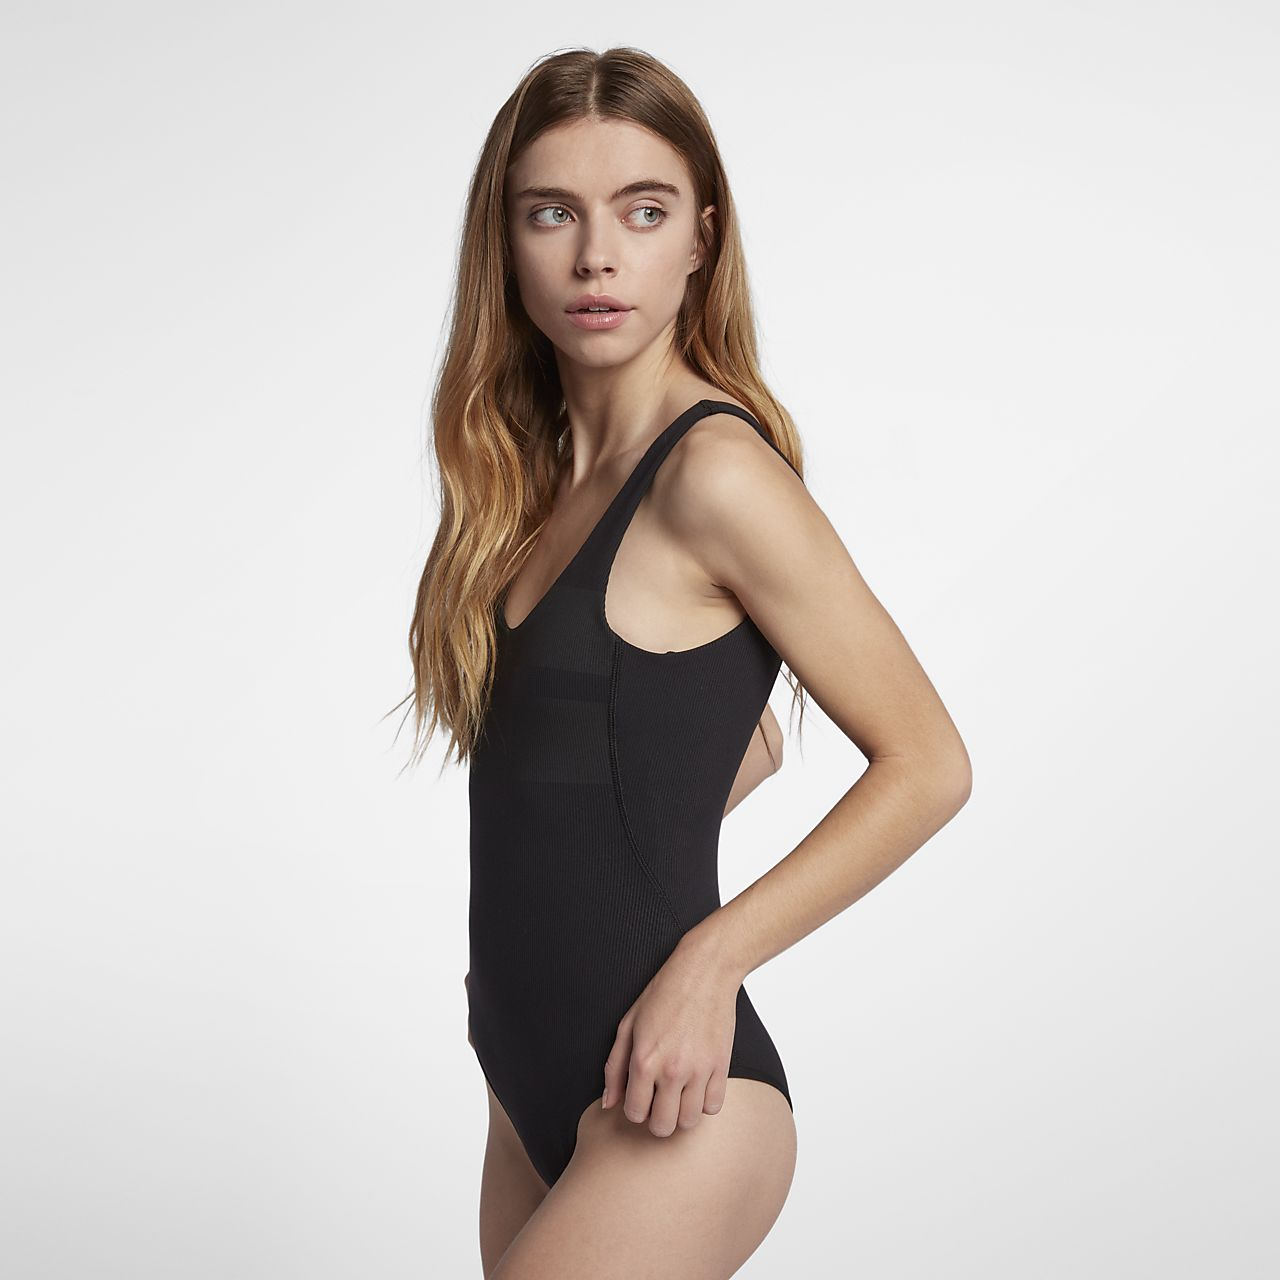 038676773e8 Hurley Quick Dry Block Party Women s Bodysuit. Nike.com AU